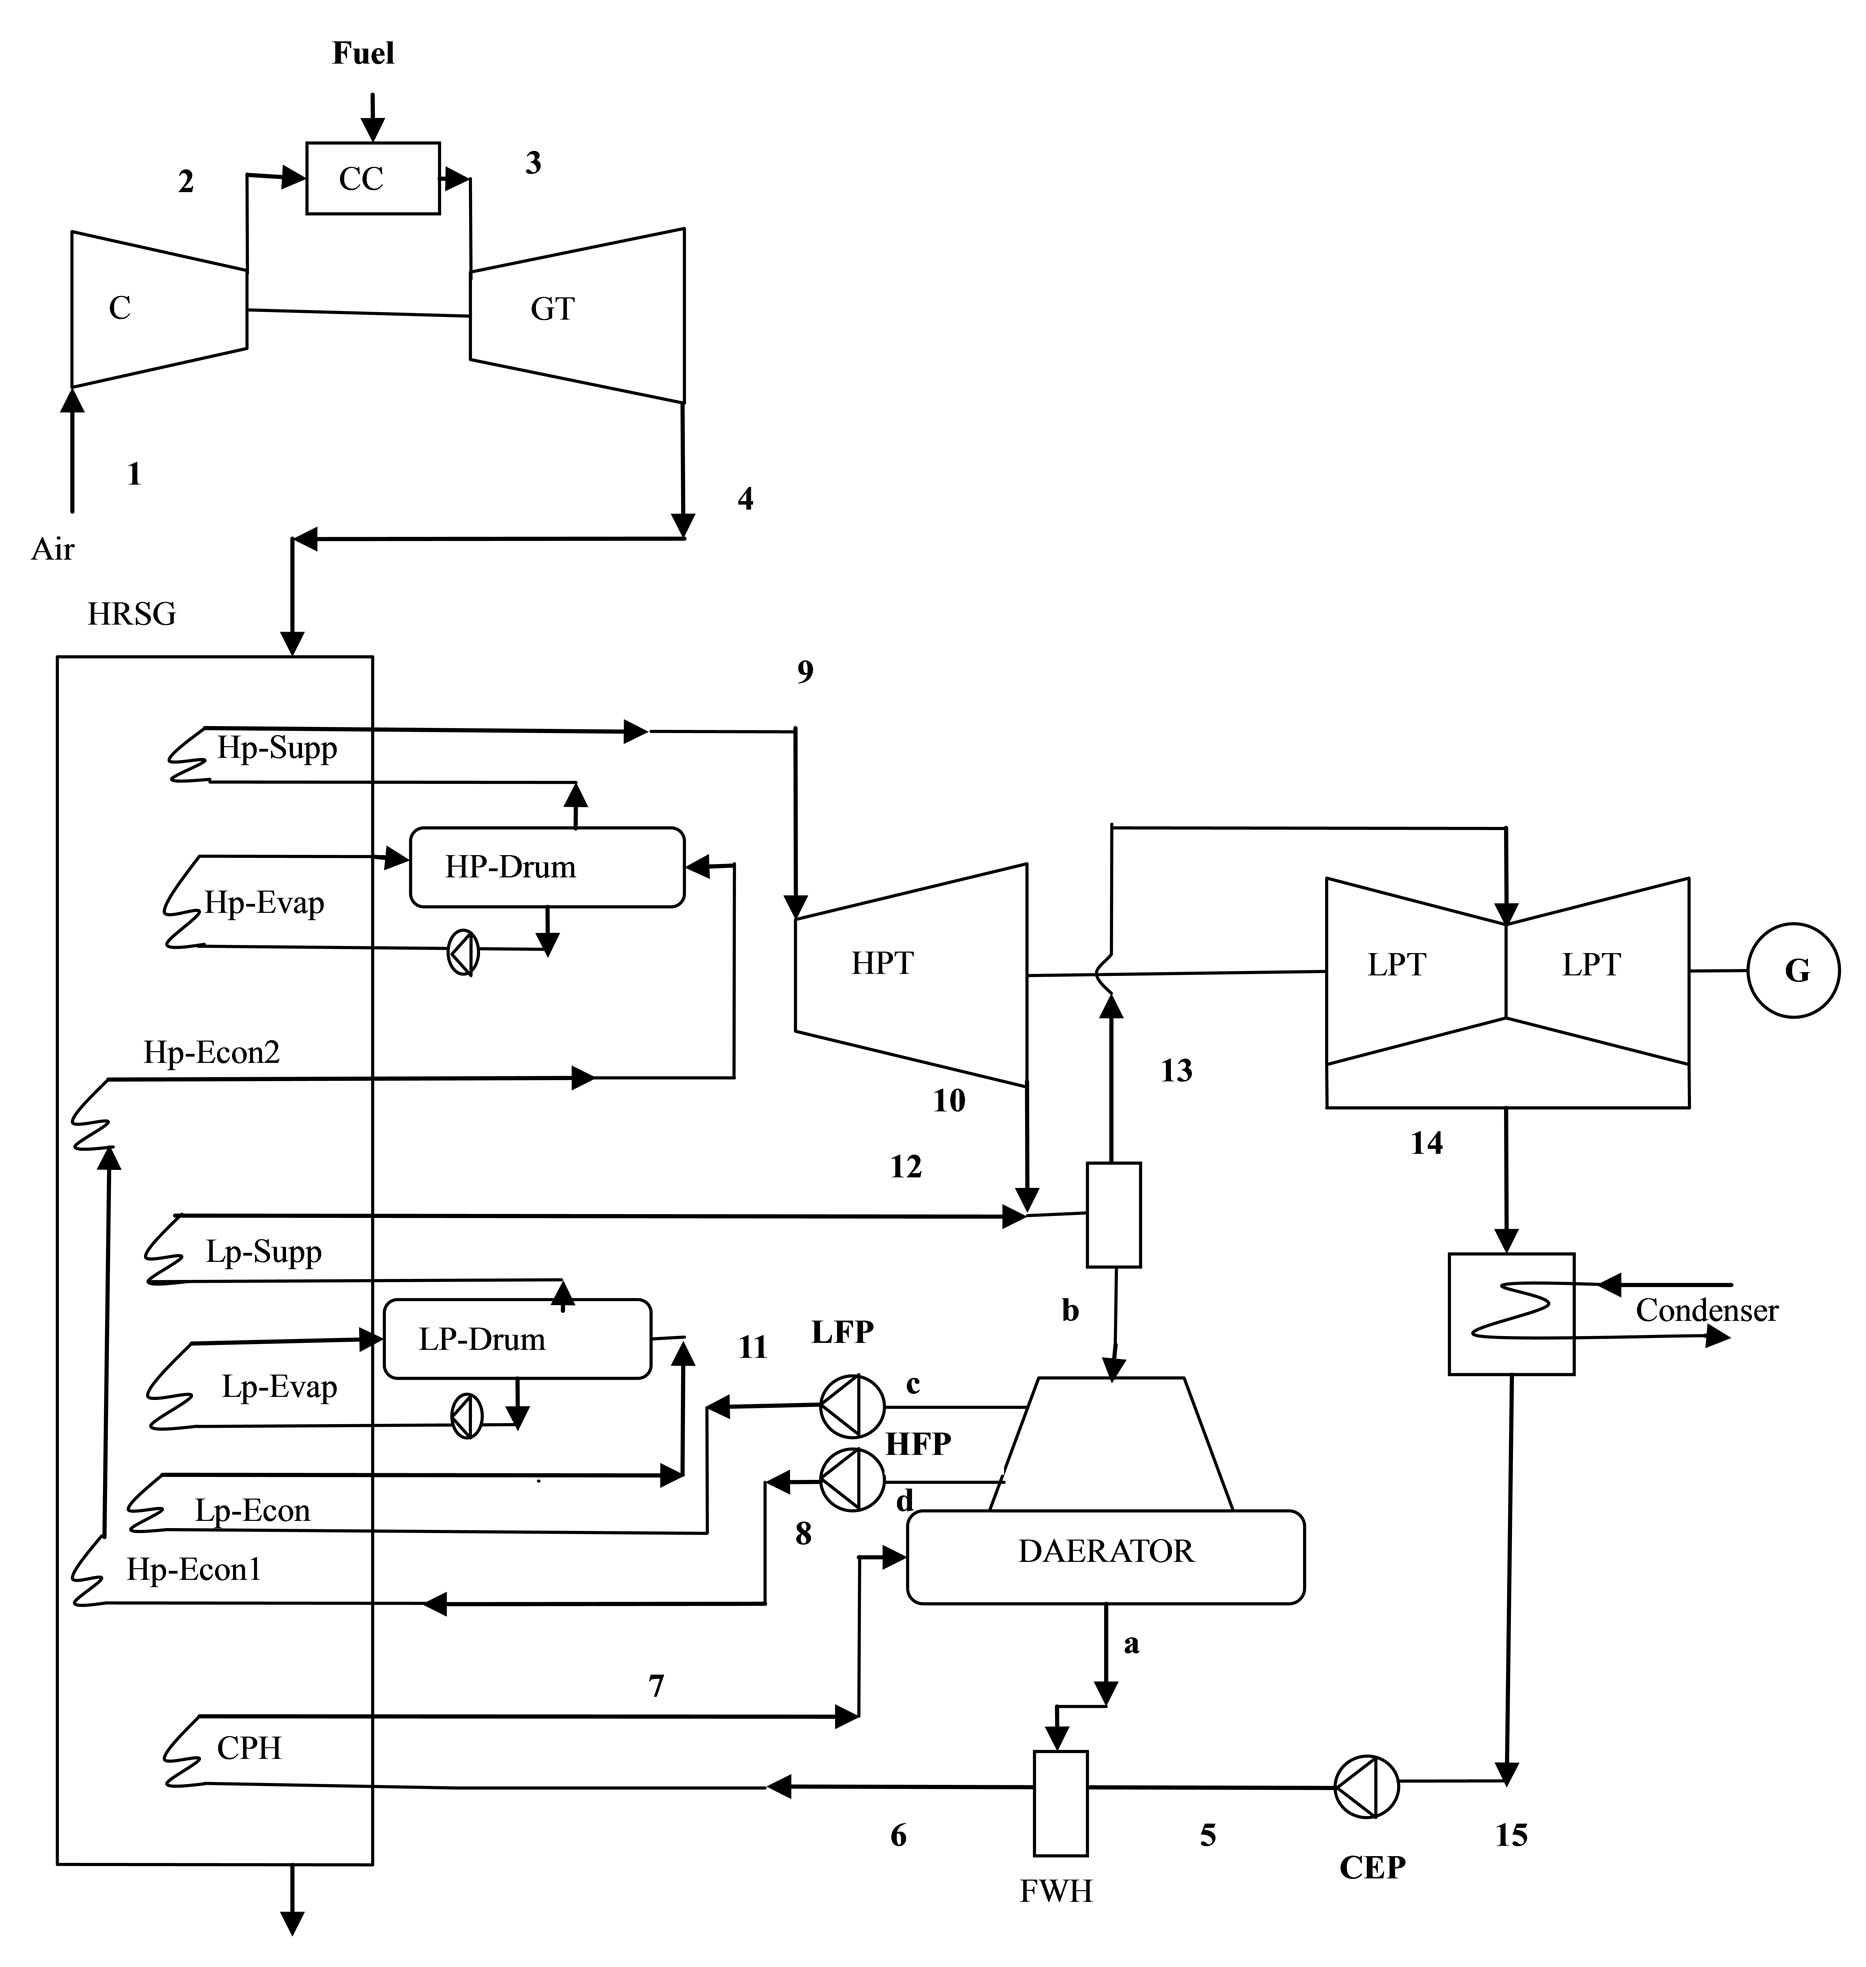 hight resolution of  geothermal power plant diagram line diagram of thermal power plant indicating each and